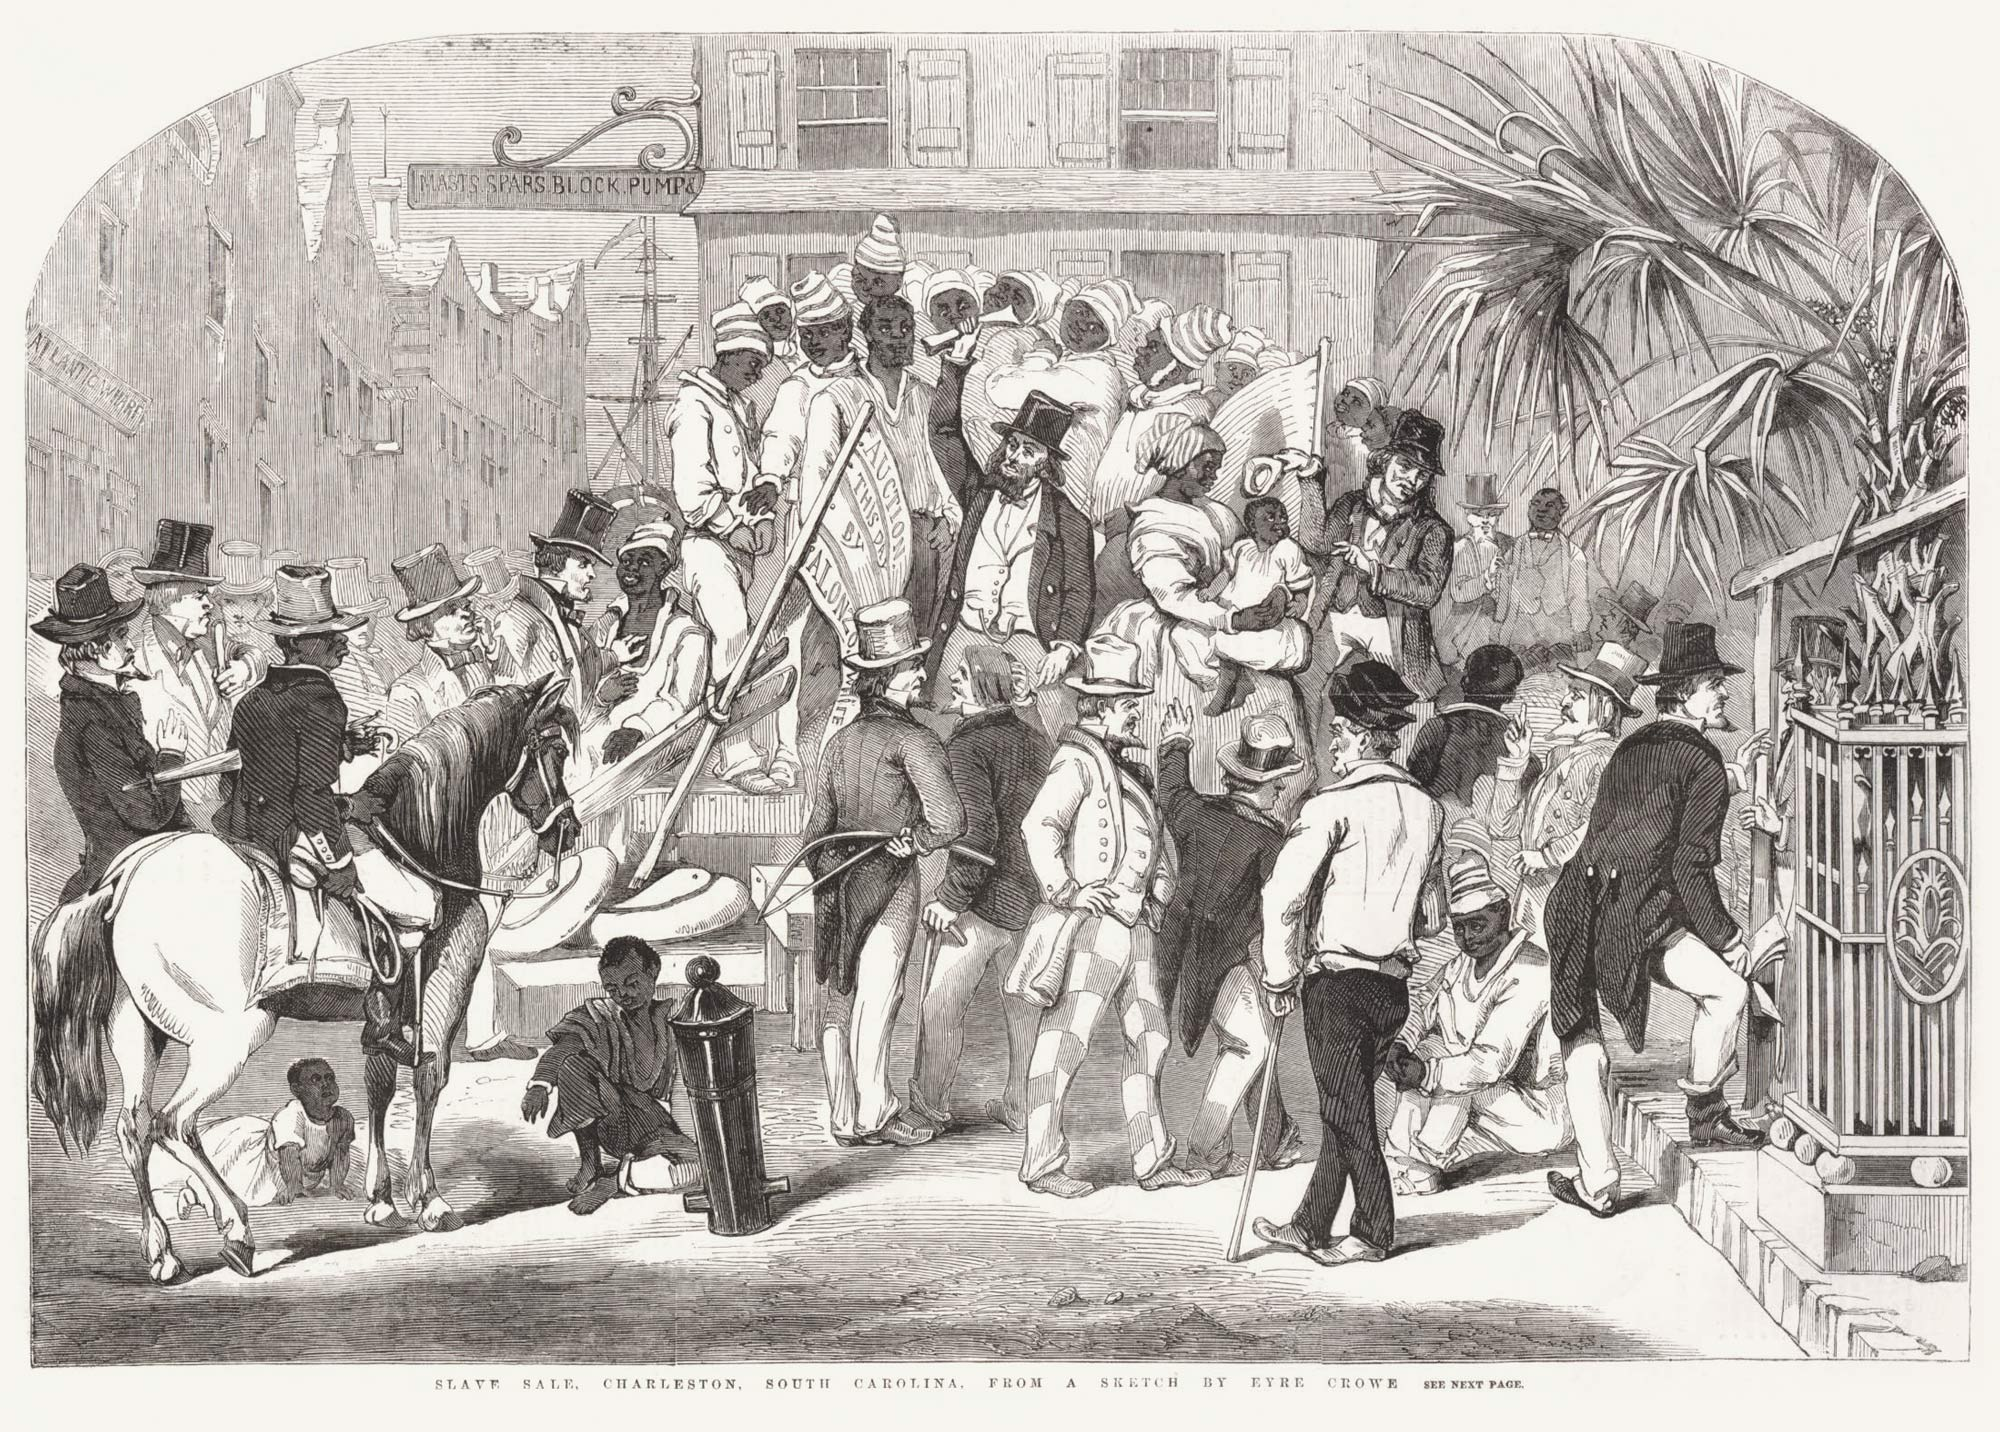 An engraving of a Charleston, S.C. slave sale, 1856.